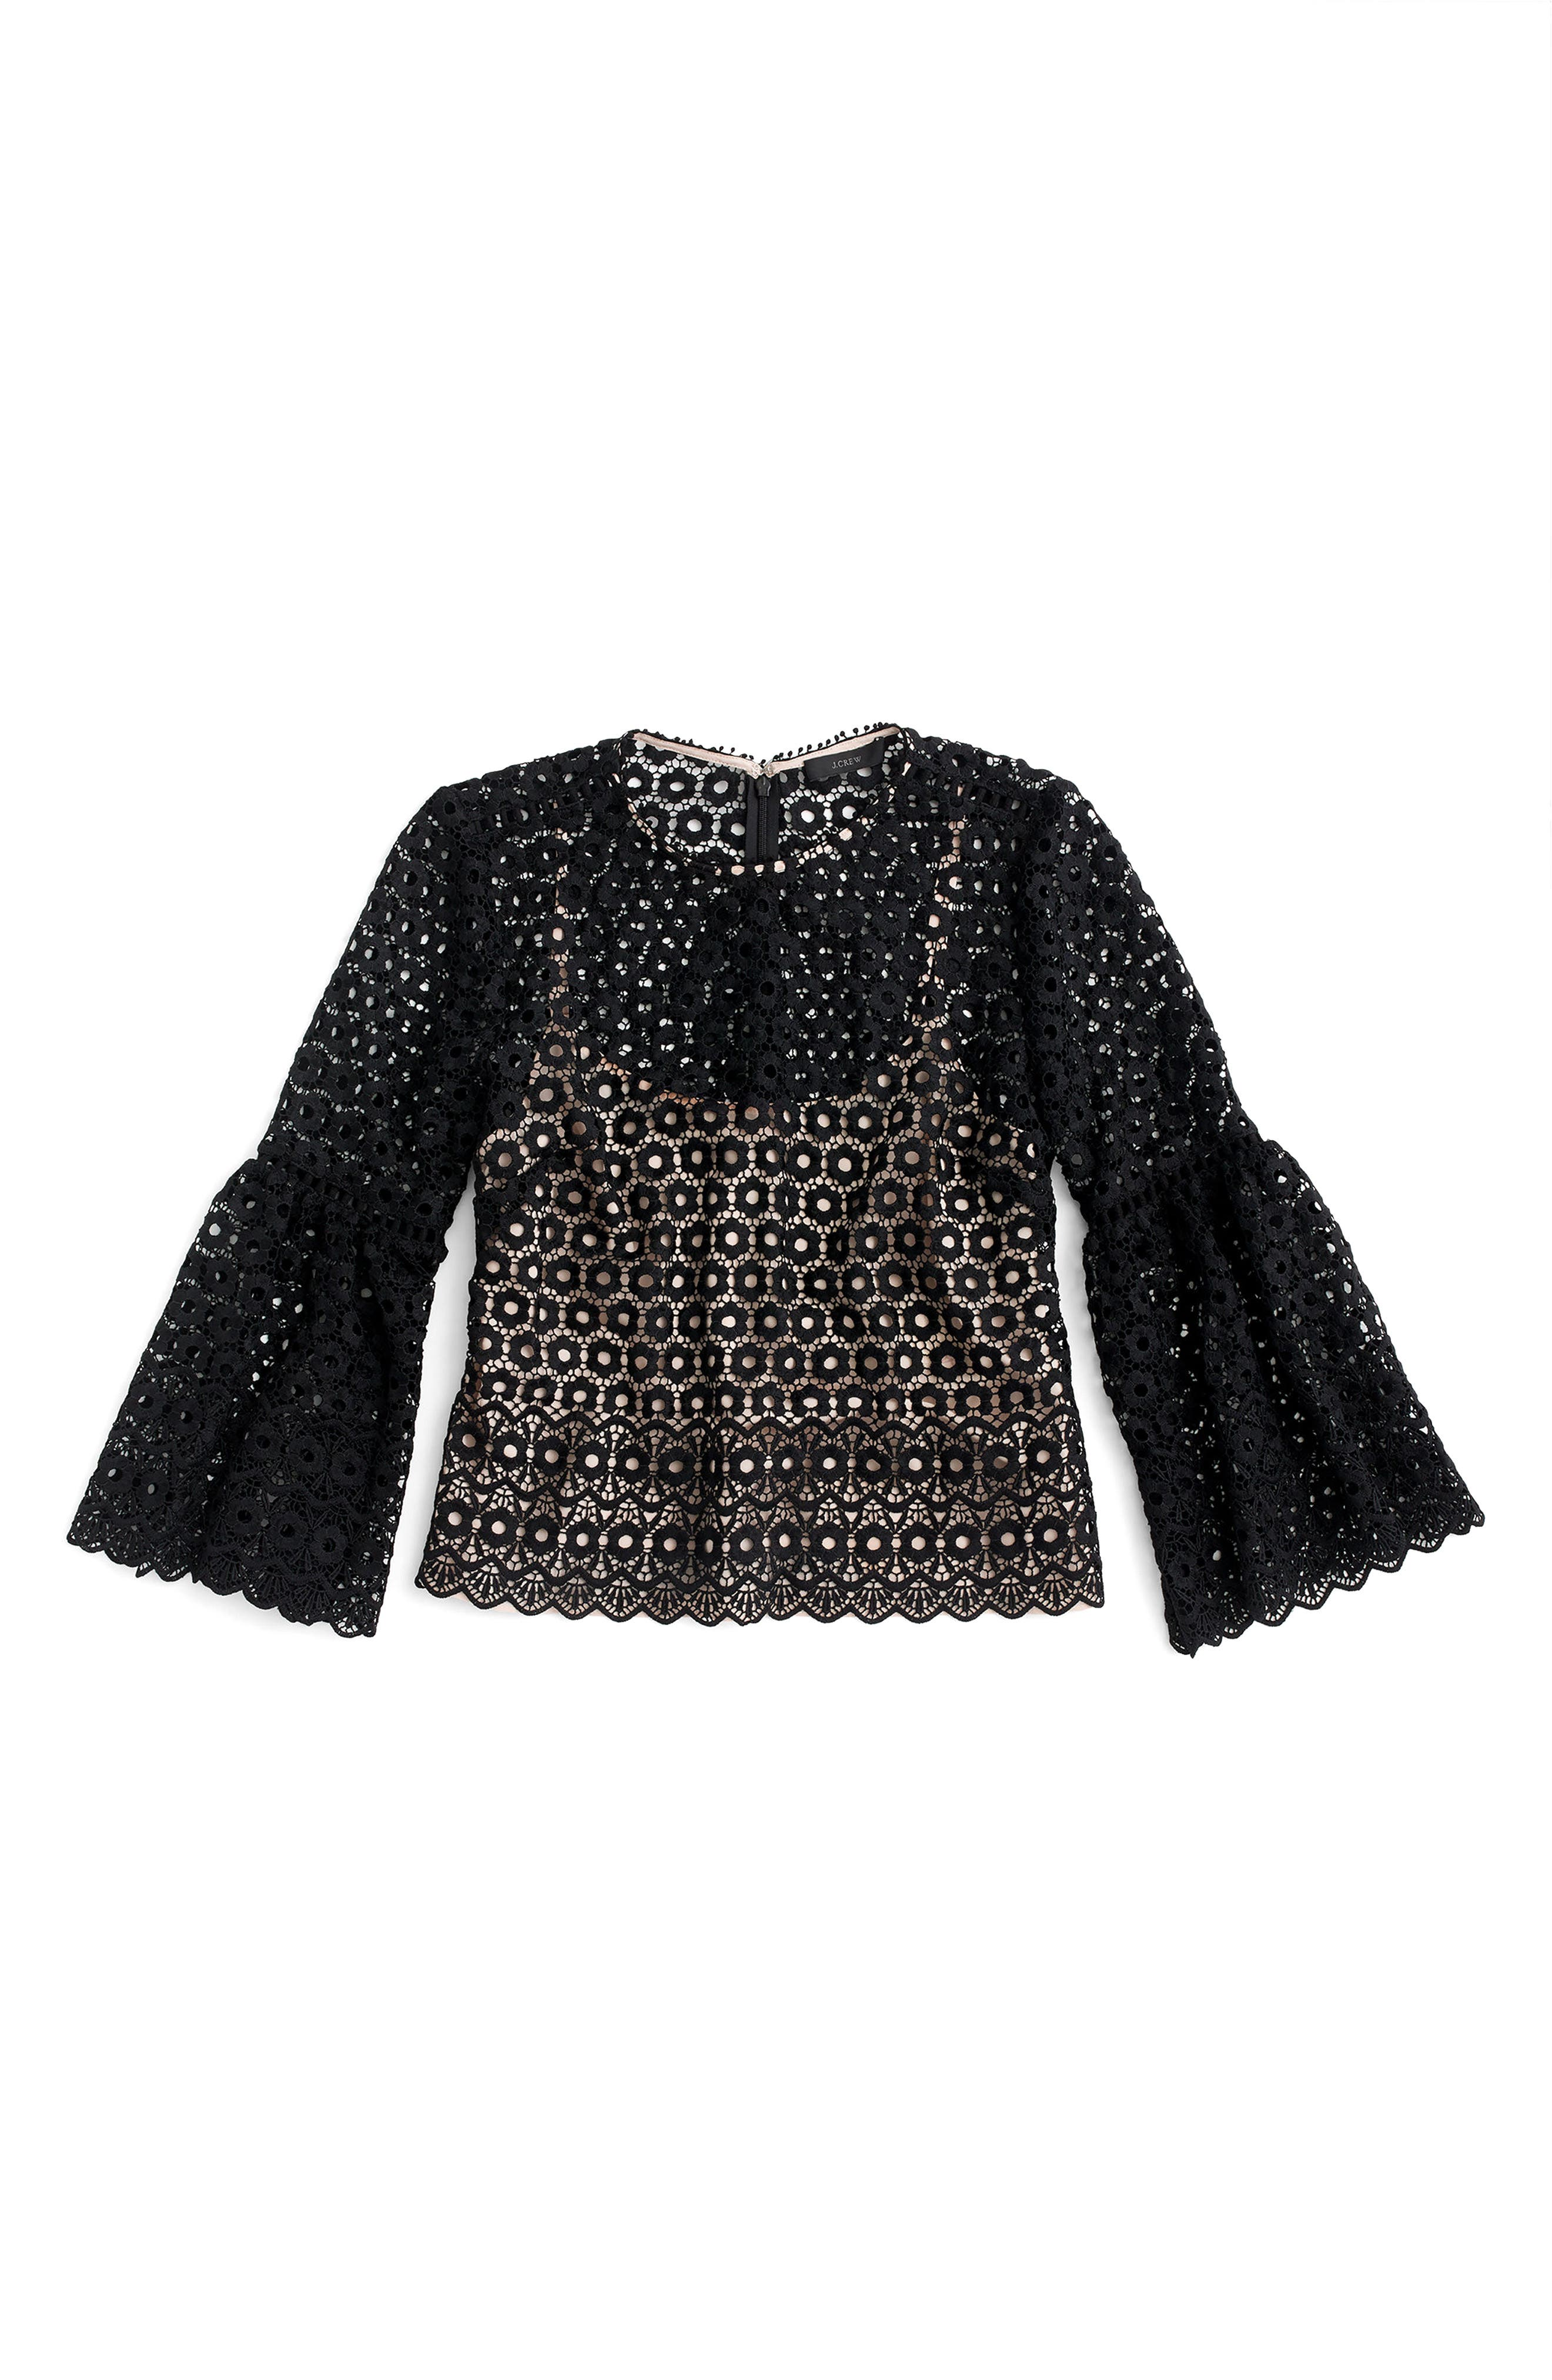 Alternate Image 3  - J.Crew Bell Sleeve Daisy Lace Top